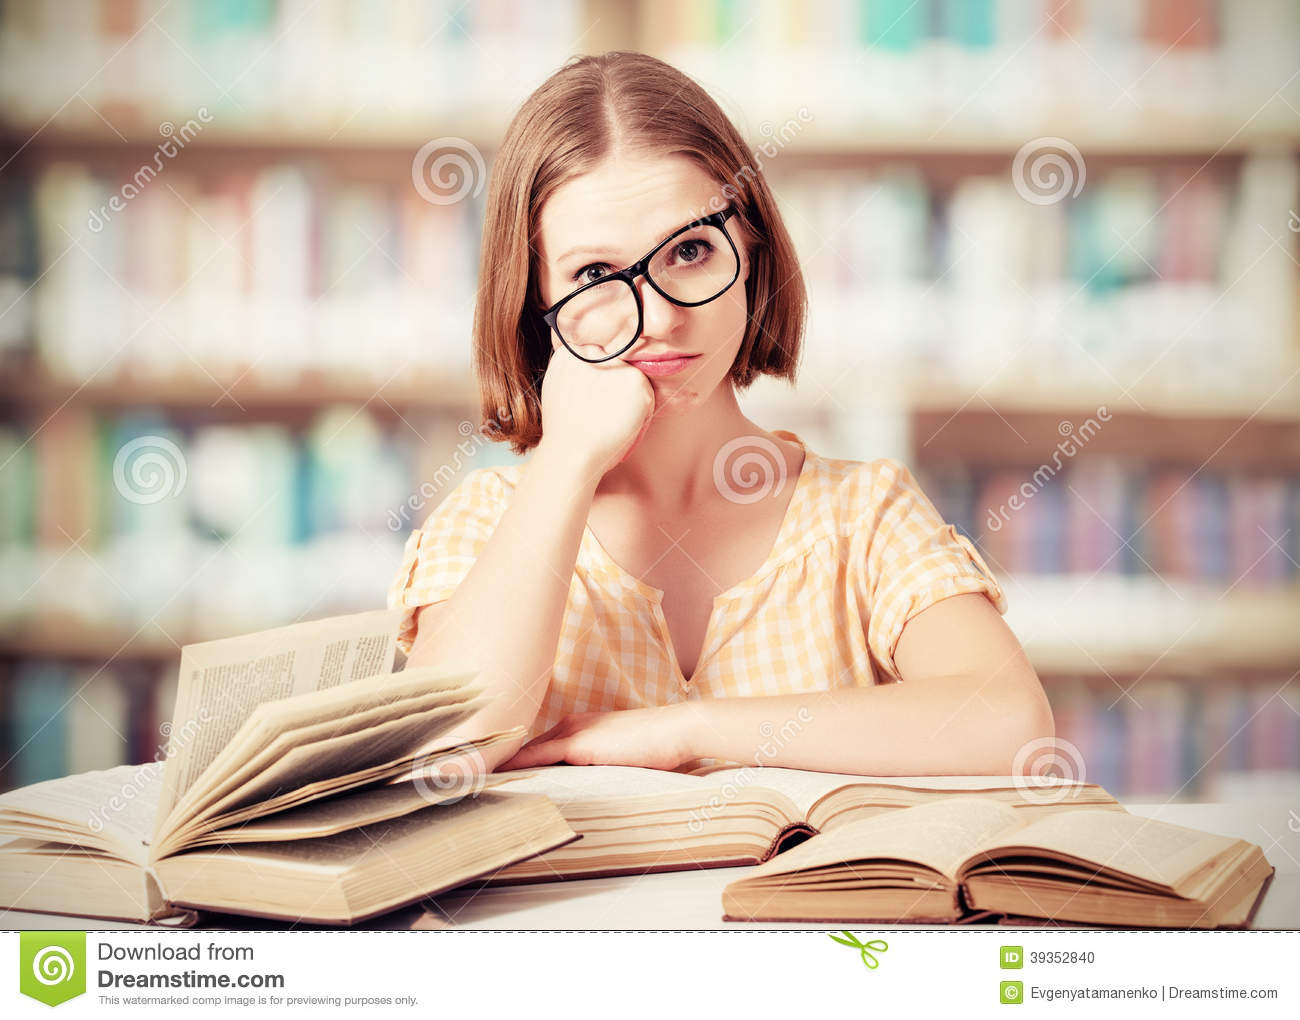 Tired Funny Girl Student With Glasses Reading Books Stock ...